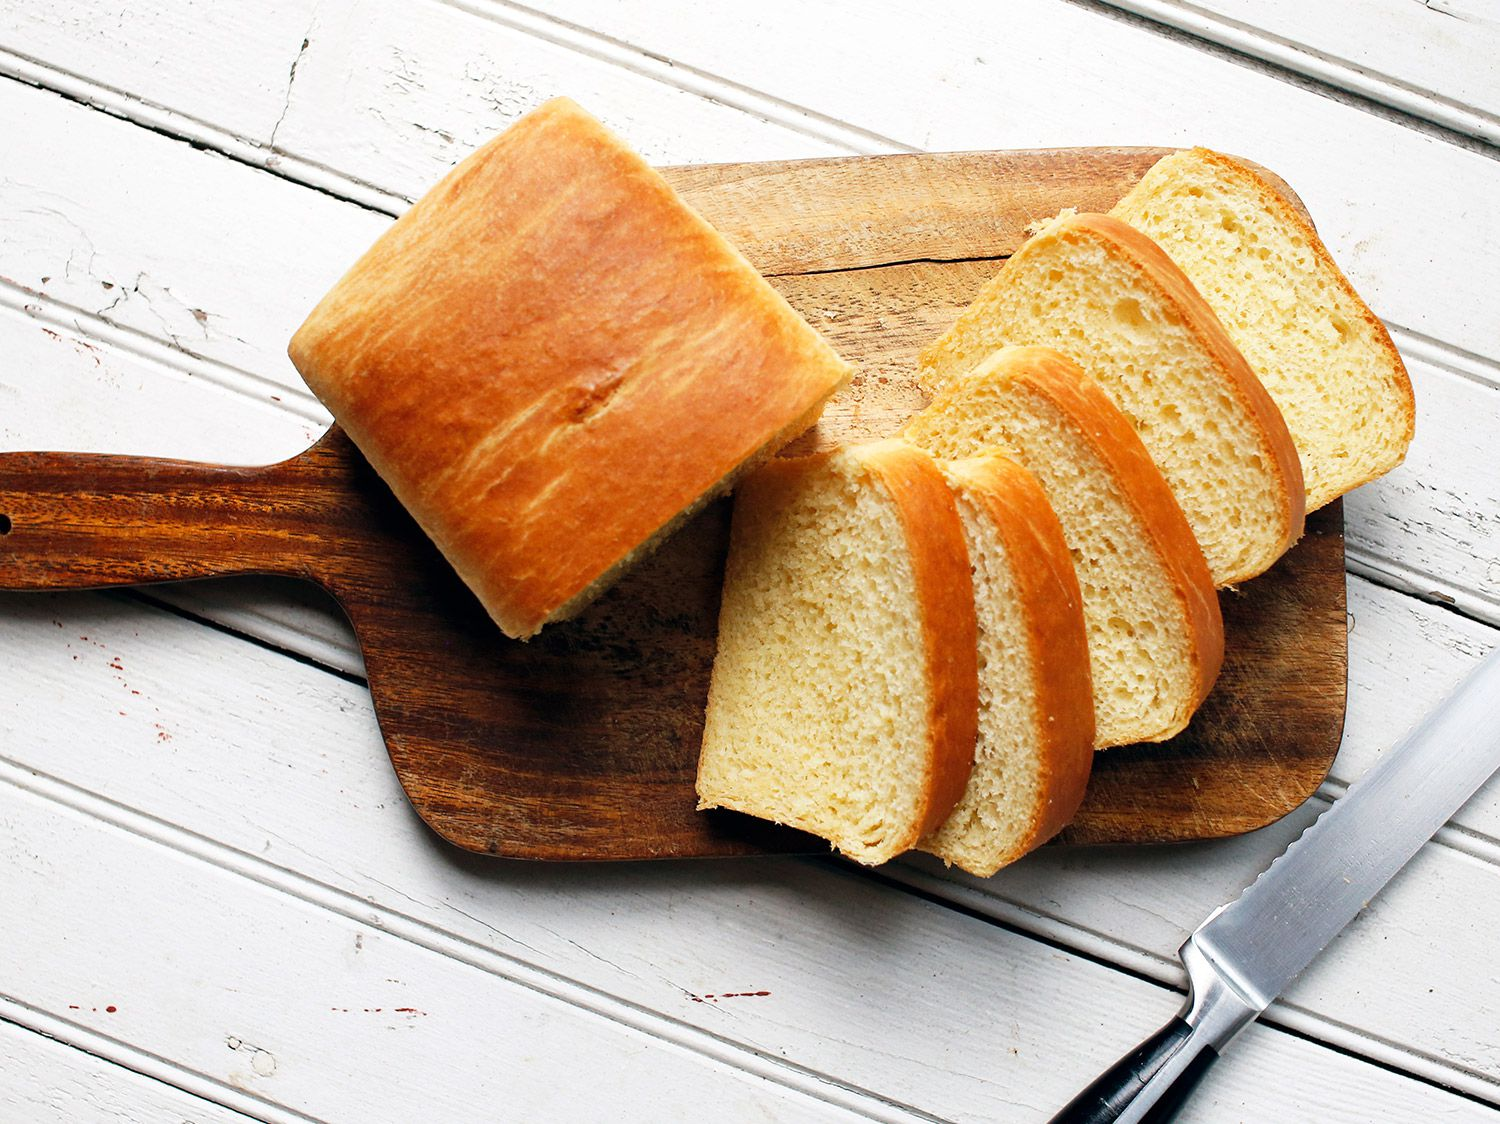 """The generous amount of eggs and butter in this classic French bread yields a rich, tender crumb and the most irresistible pillowy texture. Get the recipe for <a href=""""https://www.saveur.com/brioche-recipe/"""">Brioche</a>"""